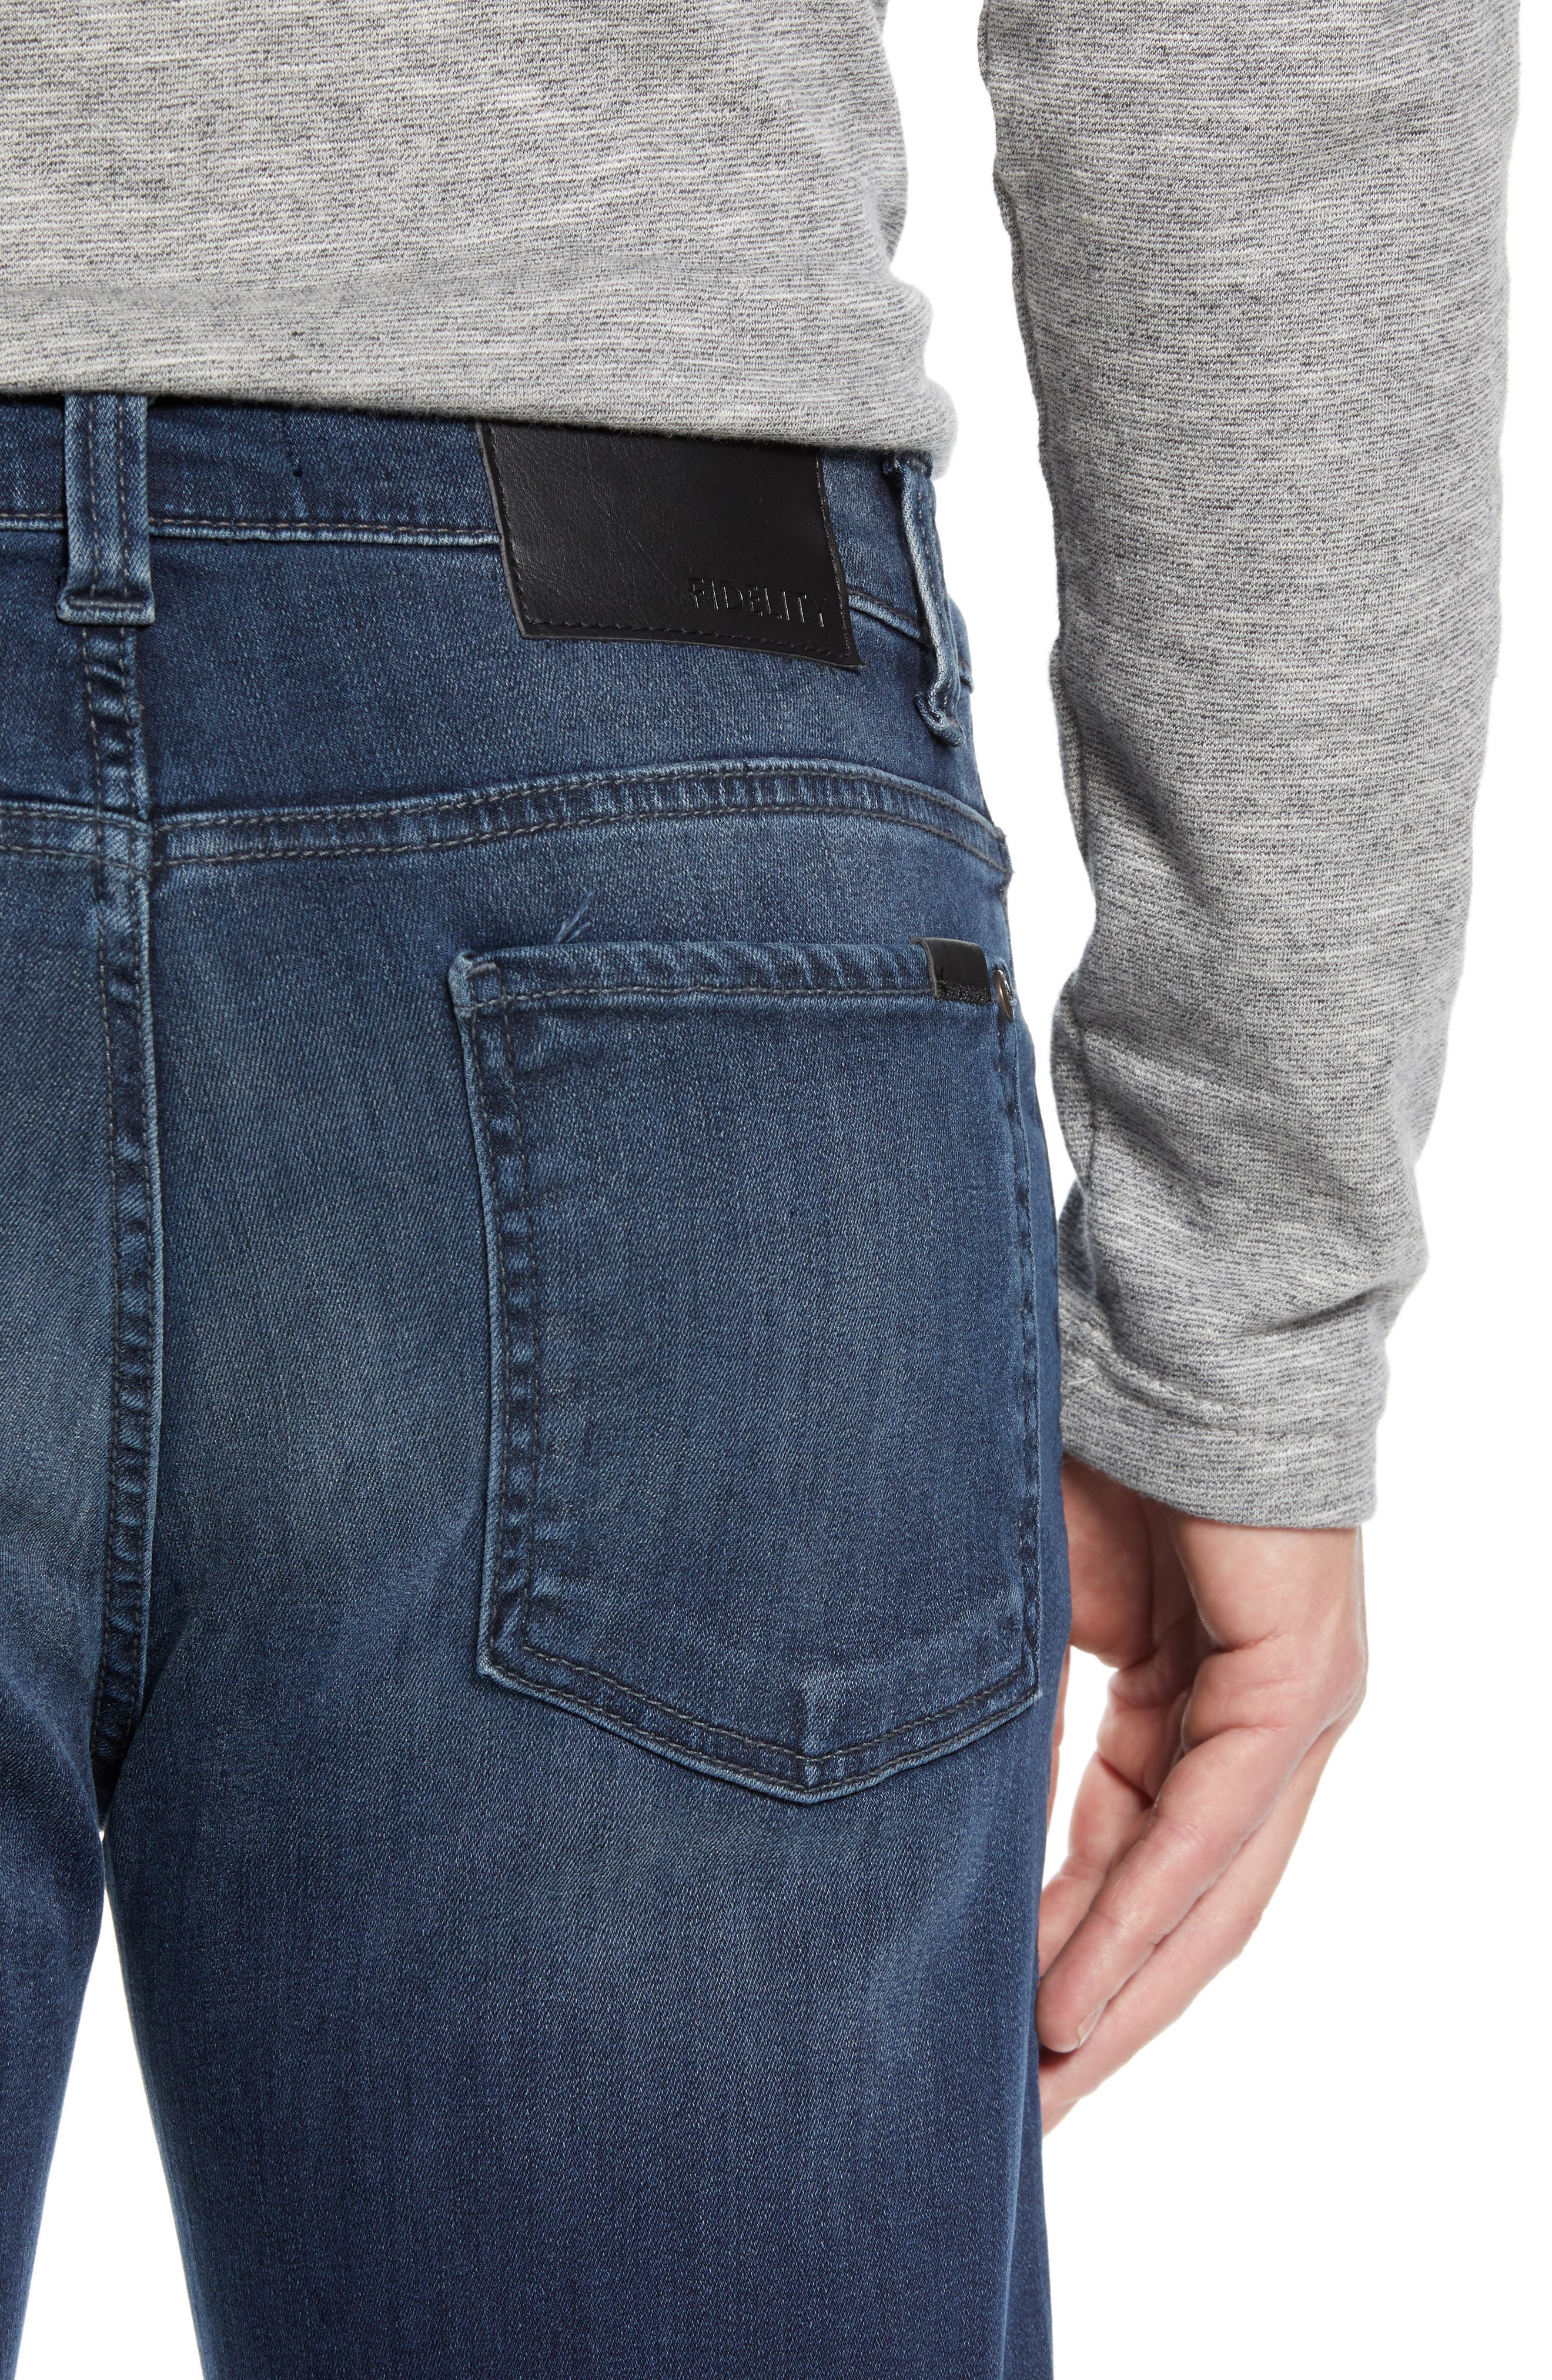 50-11 Relaxed Fit Jeans,                             Alternate thumbnail 4, color,                             BEL AIR BLUE